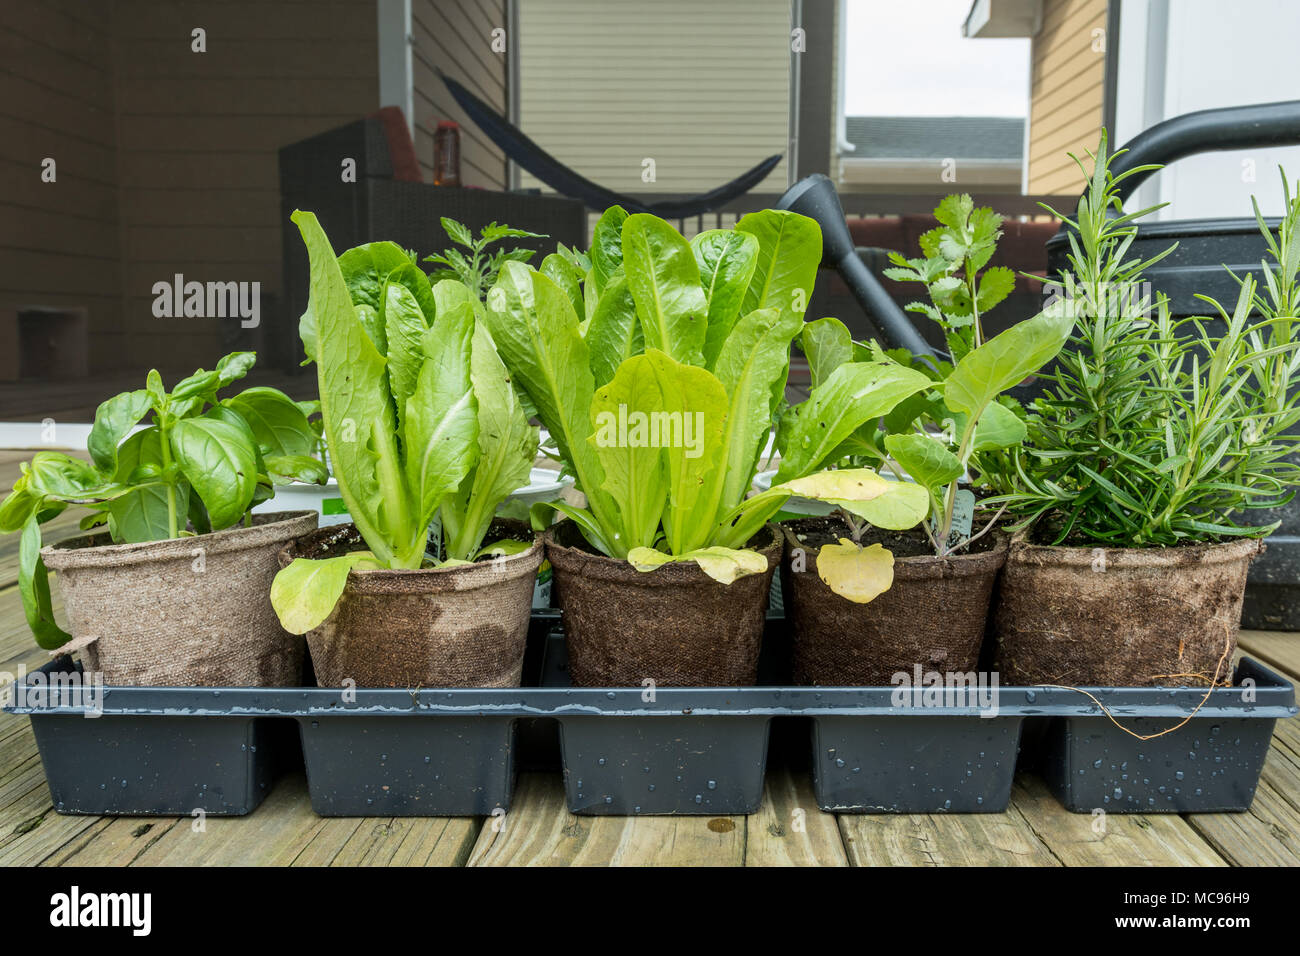 Tray of Young Plants Ready for Spring Planting on back deck - Stock Image